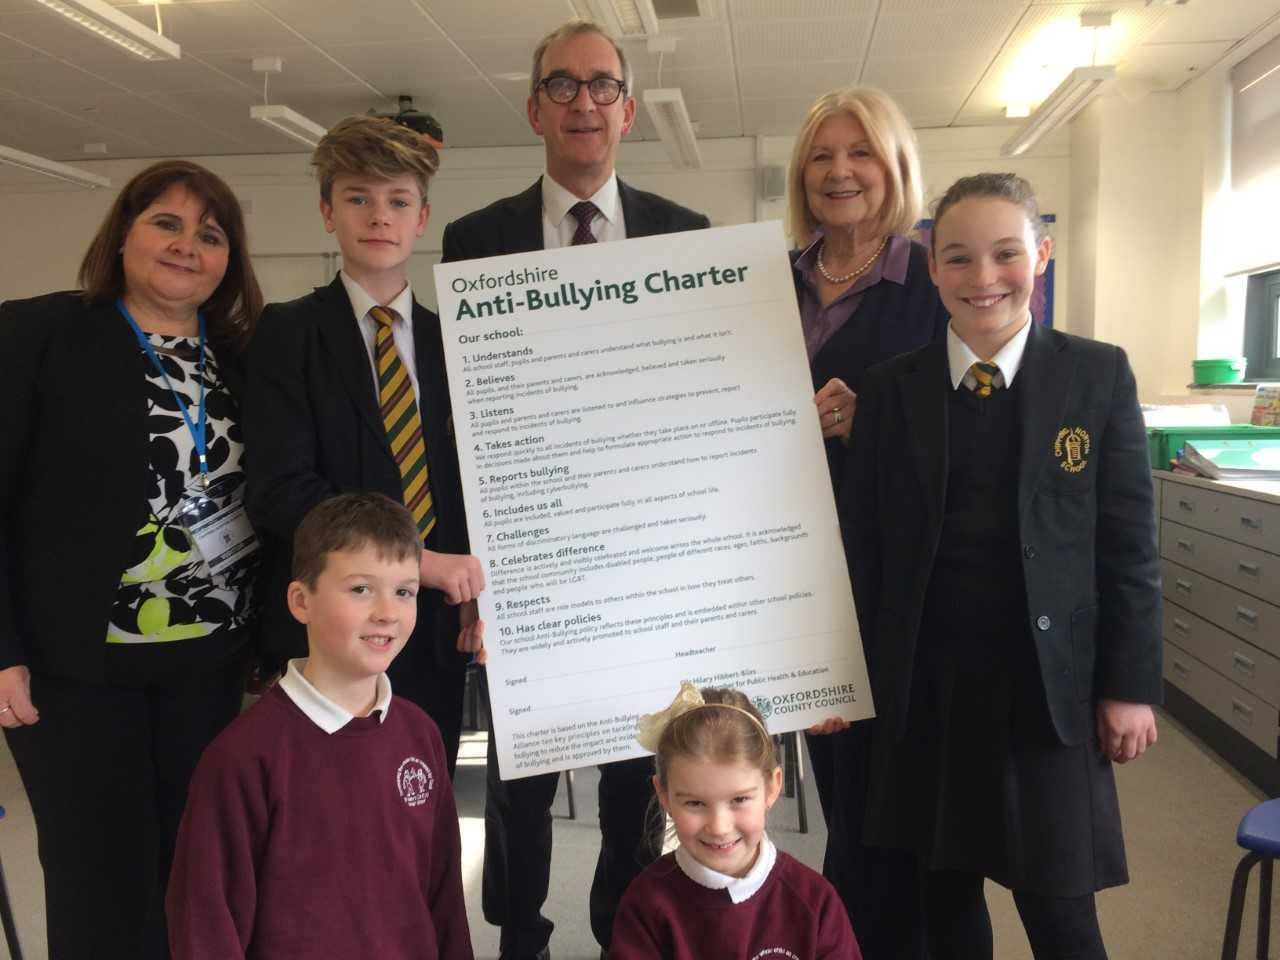 Oxfordshire County Council's cabinet member for education and public health Hilary Hibbert-Biles (second right) presents the anti-bullying charter to Chipping Norton School headteacher Simon Duffy (back, centre) and St Mary's Primary School headteache